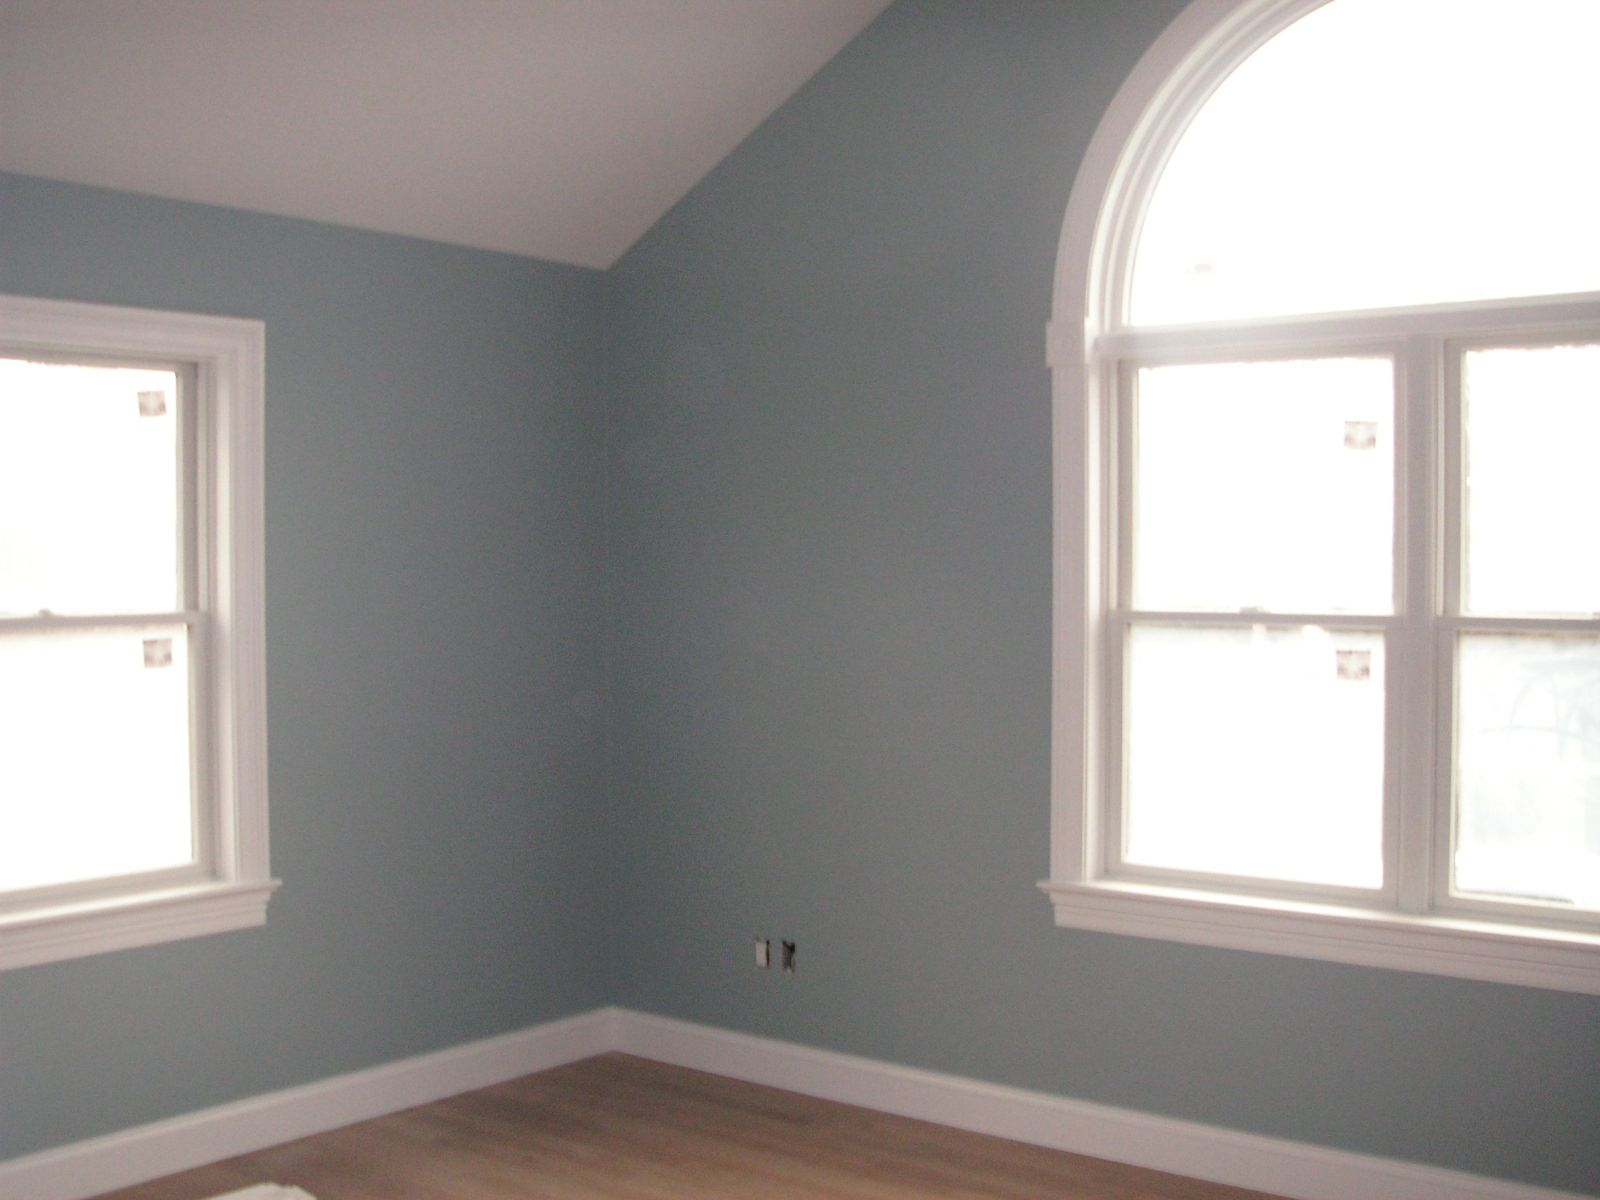 Benjamin moore paint san diego - 17 Best Images About Benjamin Moore Paint On Pinterest Paint Colors Favorite Paint Colors And Revere Pewter